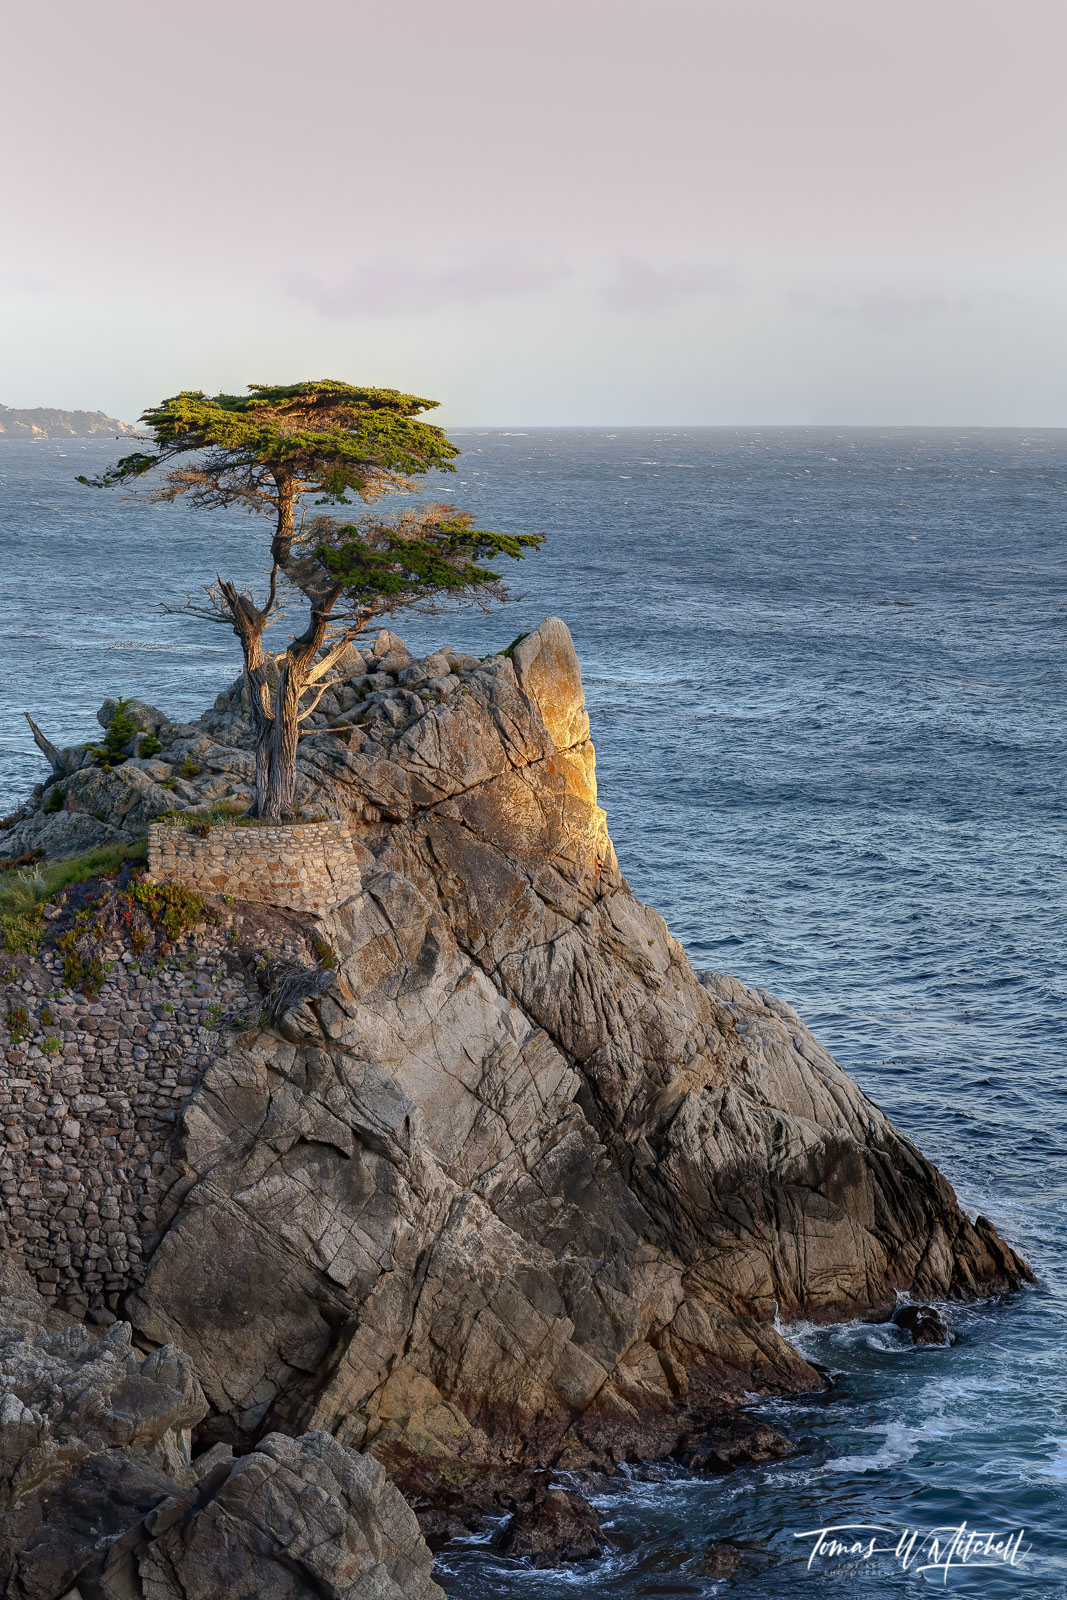 Limited Edition of 25 Museum Grade, Fine Art Prints. The Lone Cypress tree in Pebble Beach is one of the popular attractions...